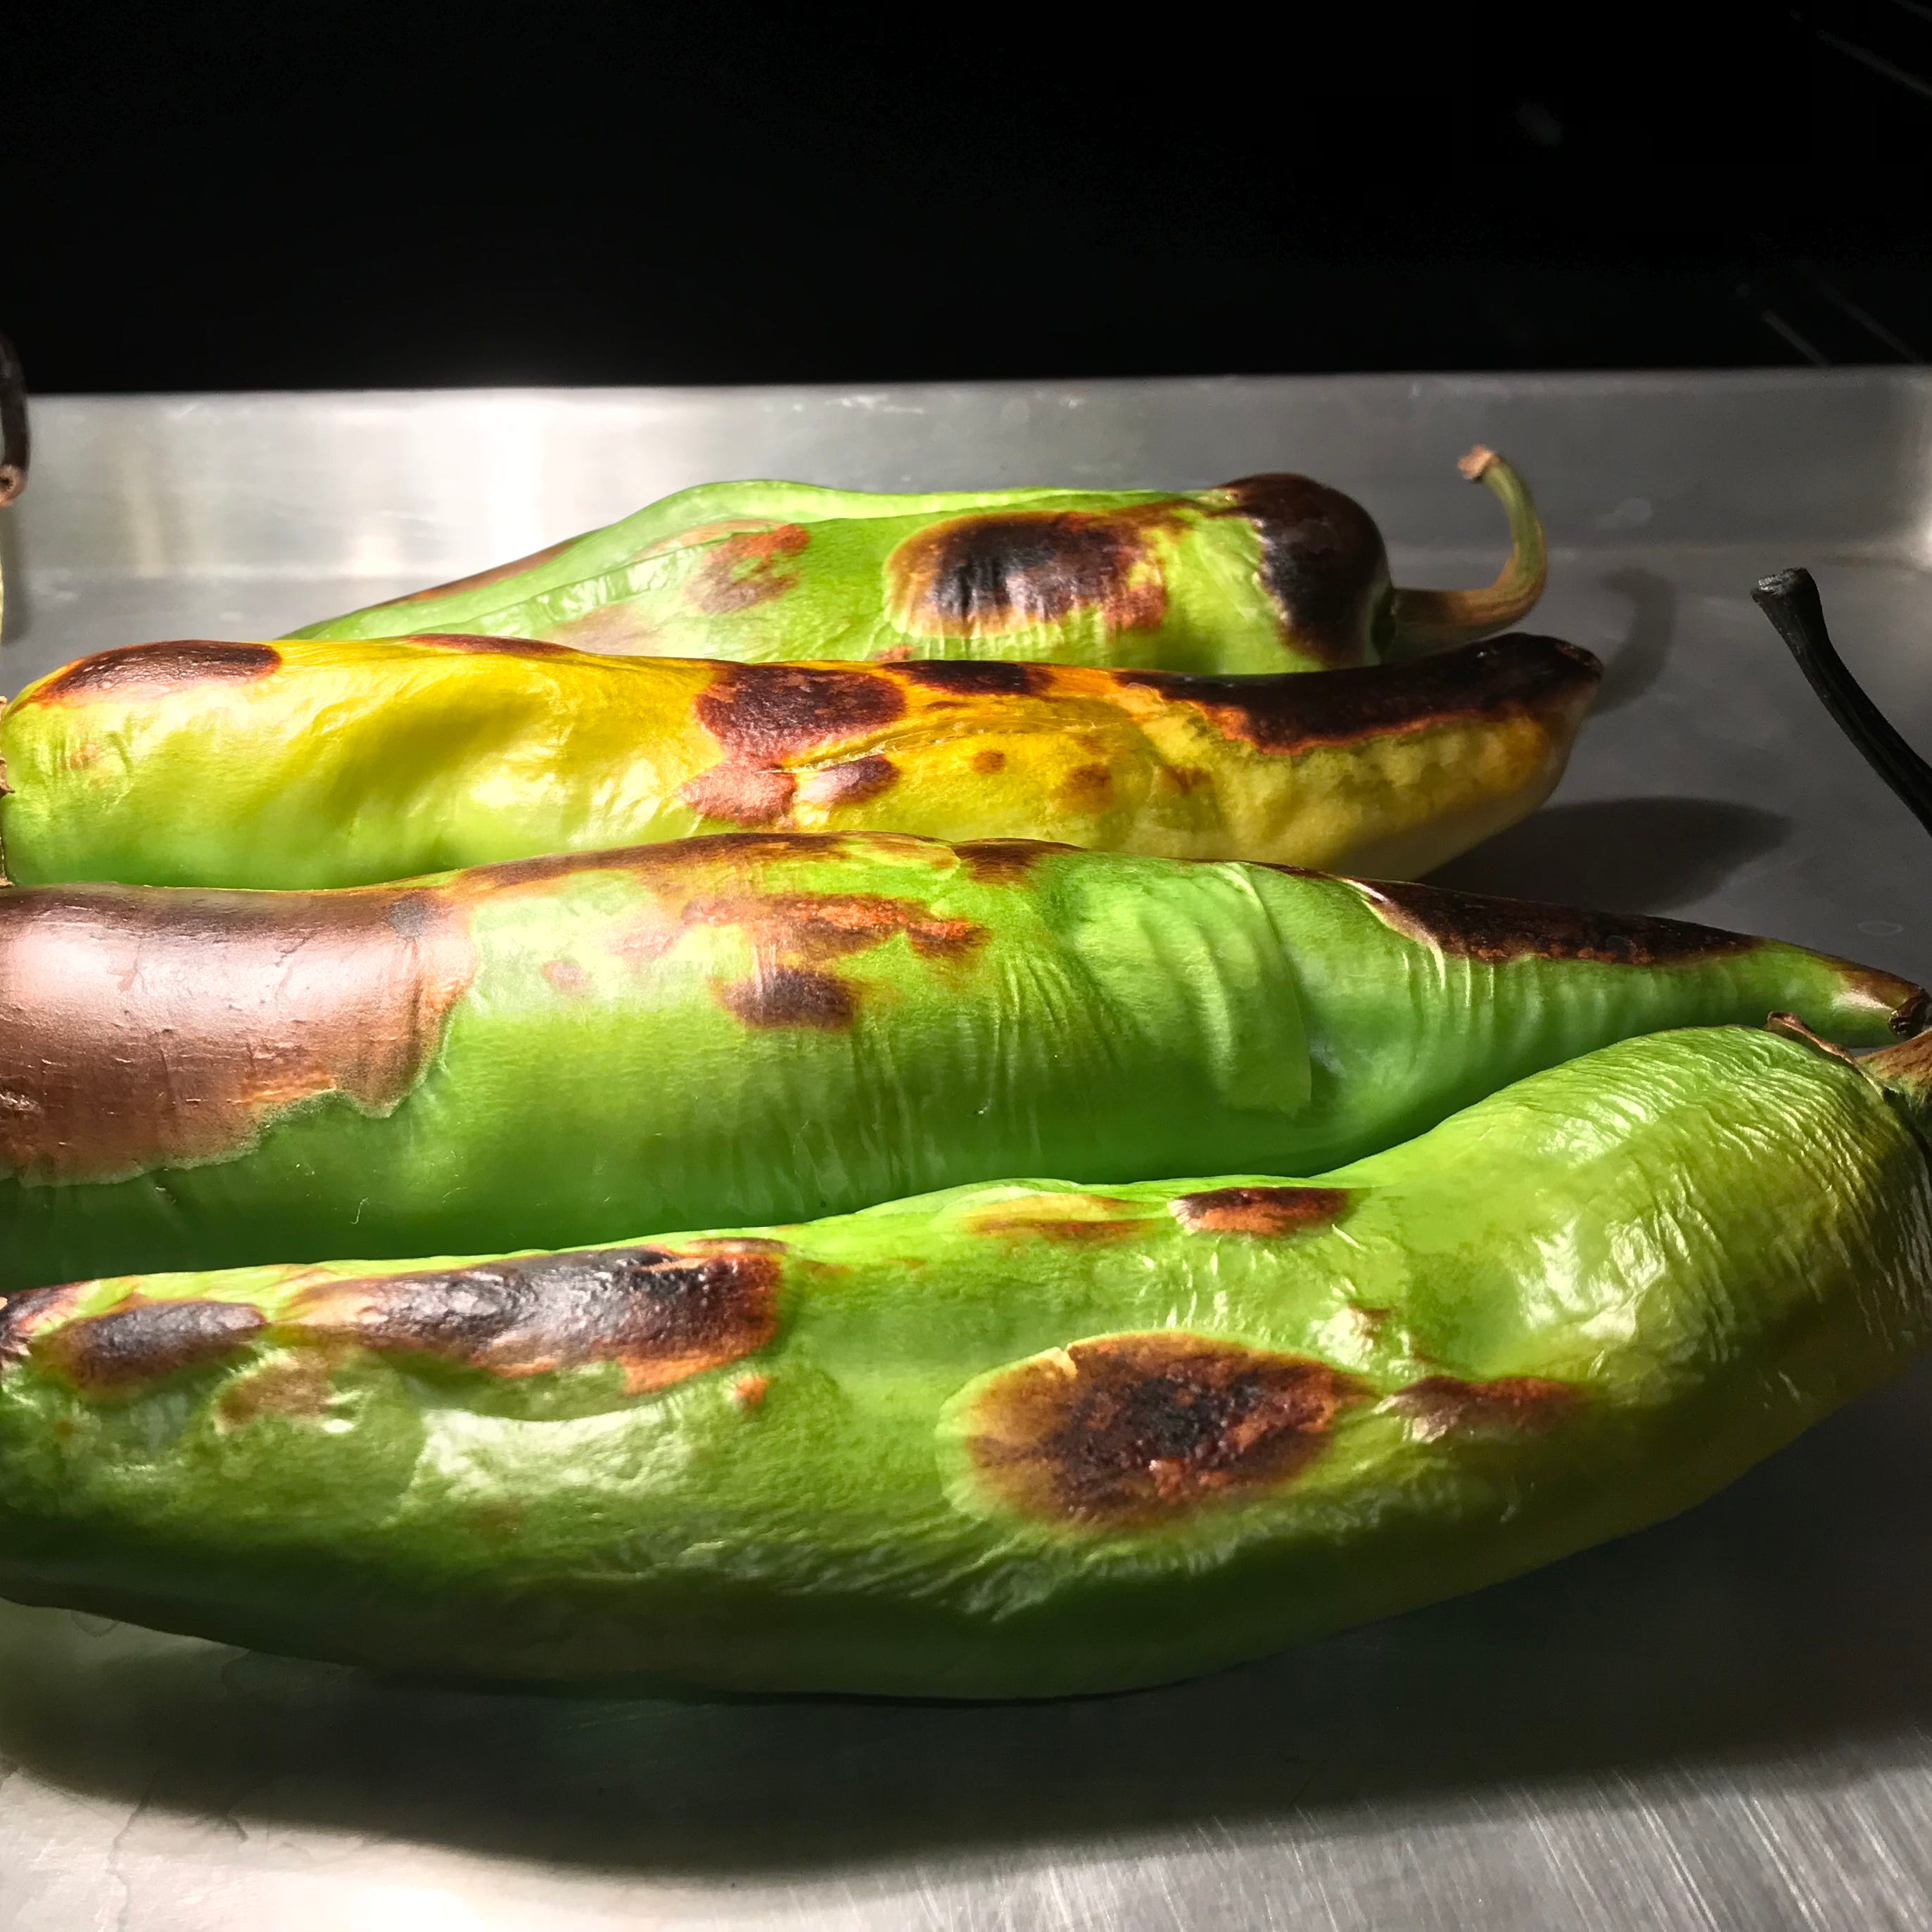 Hatch green chilies roasting in the oven.